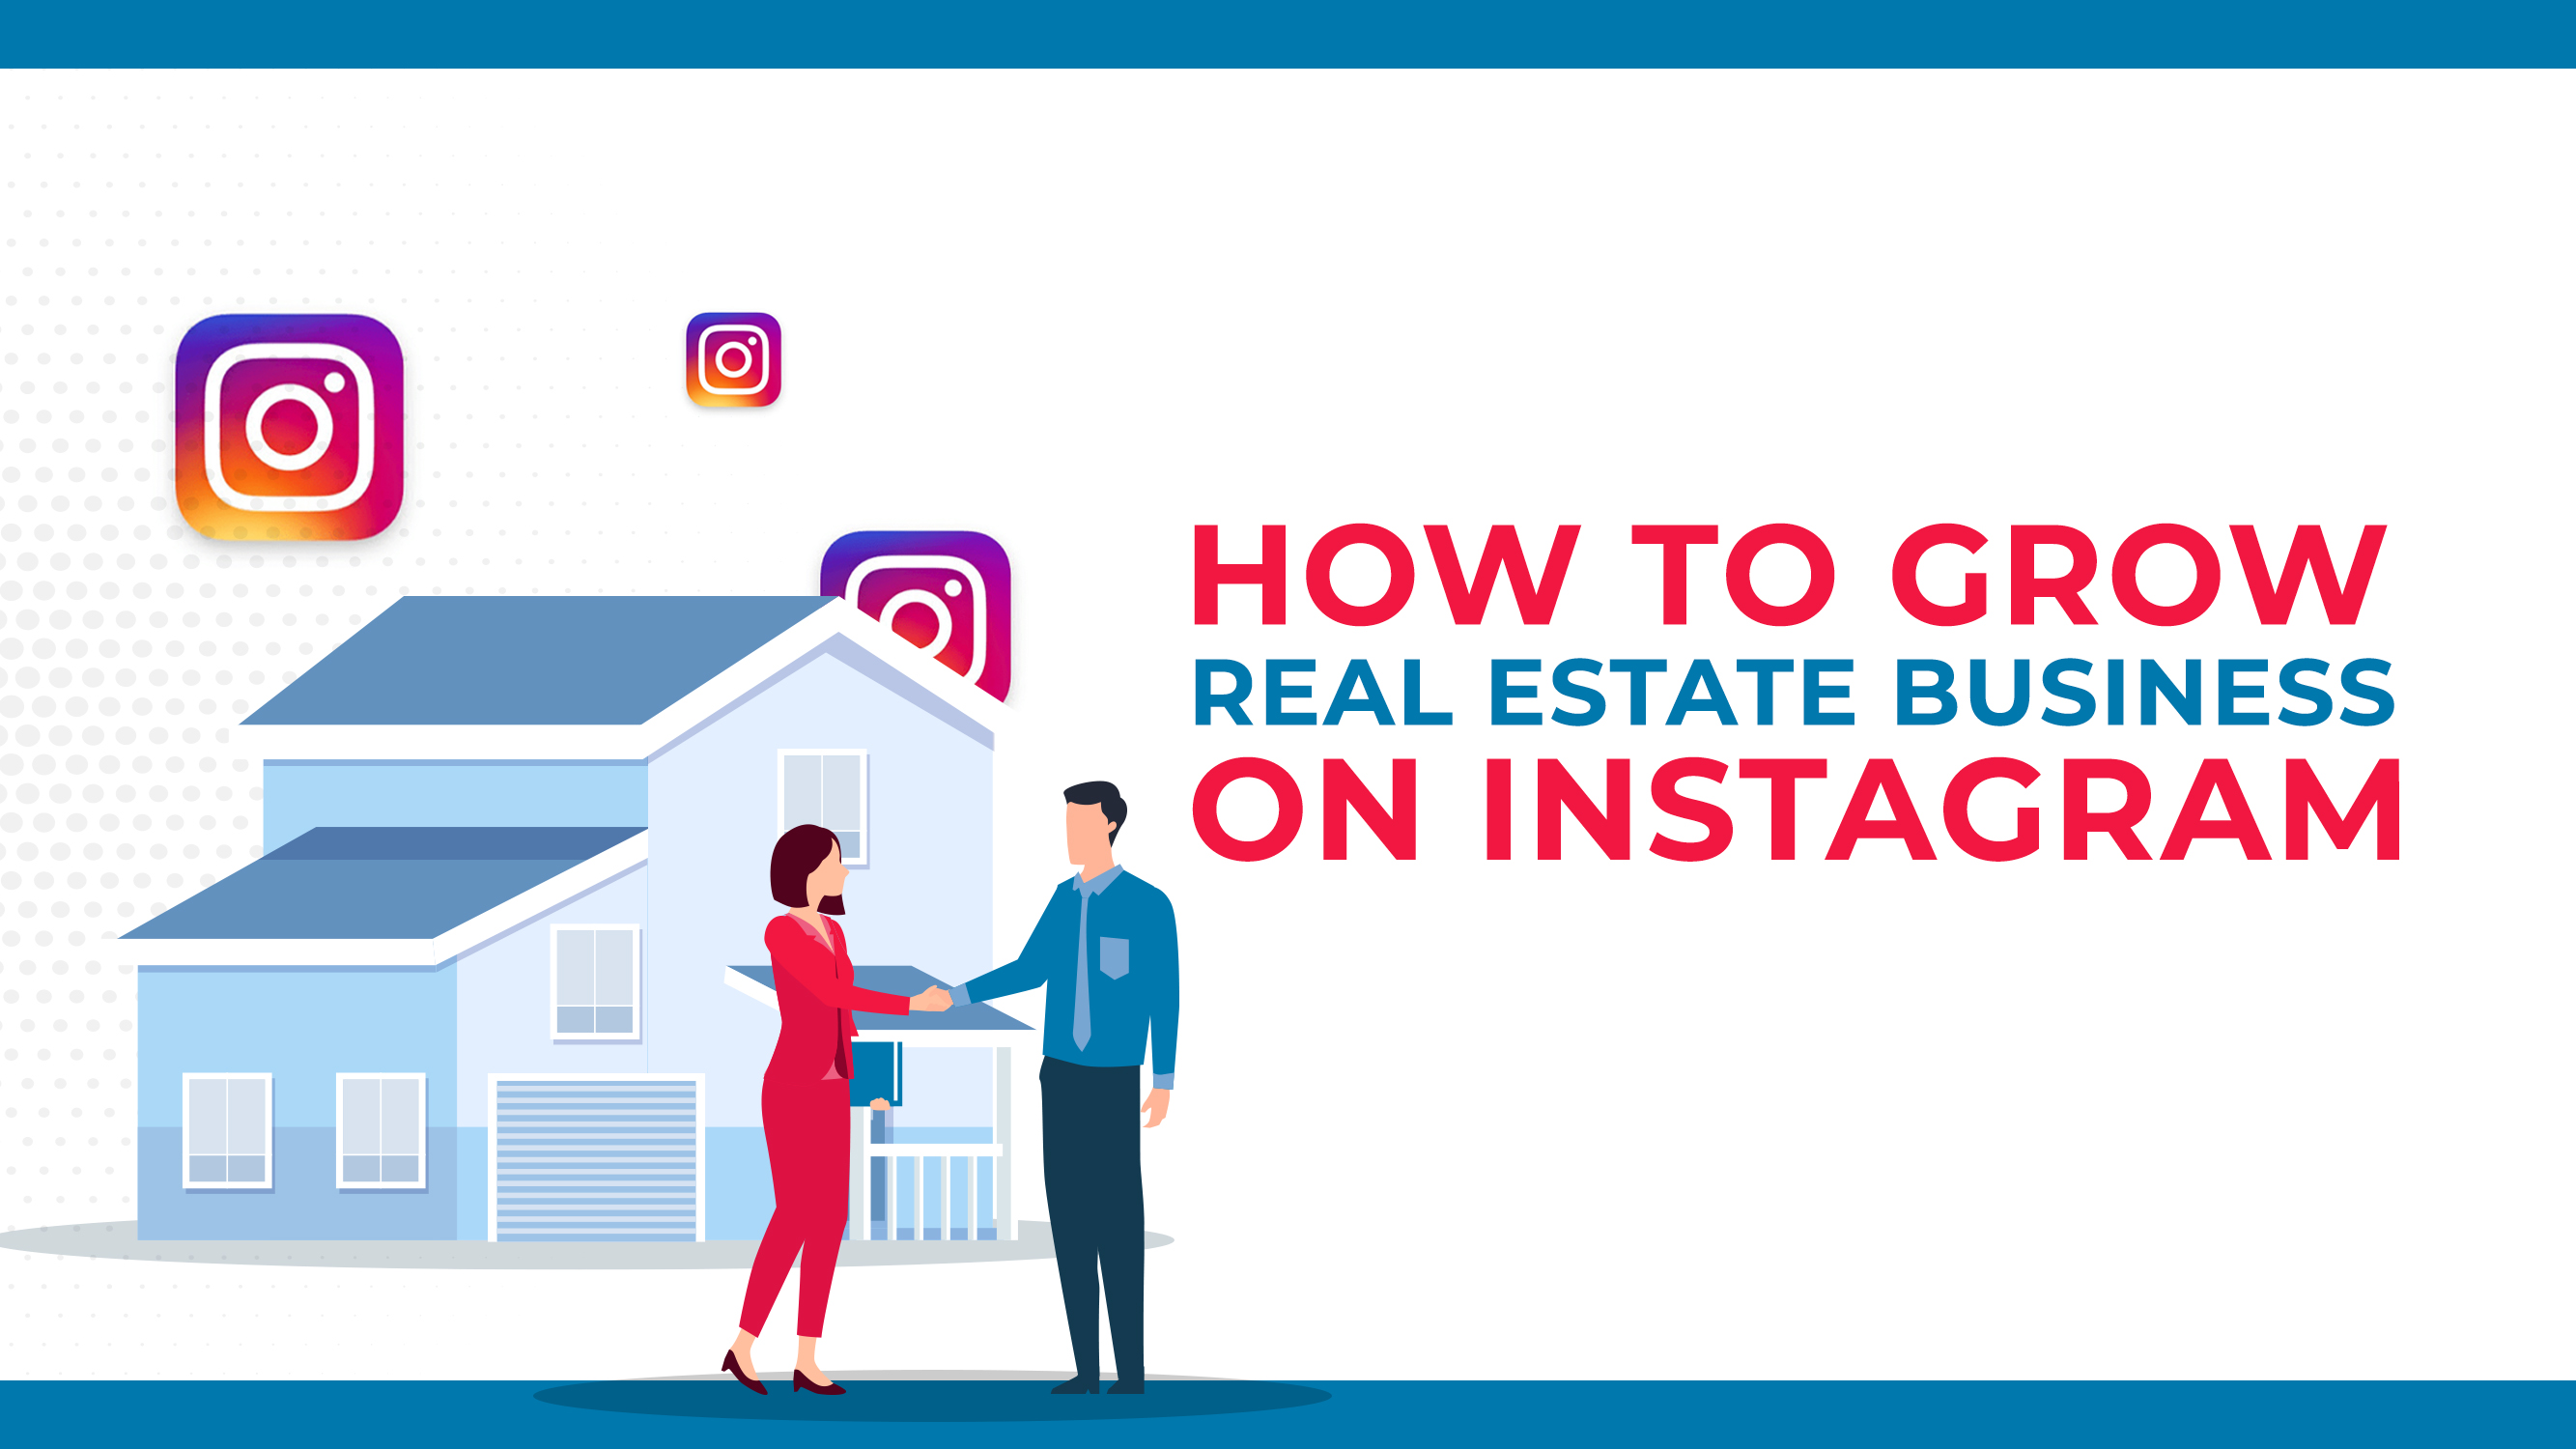 How To Grow Your Real Estate Business On Instagram